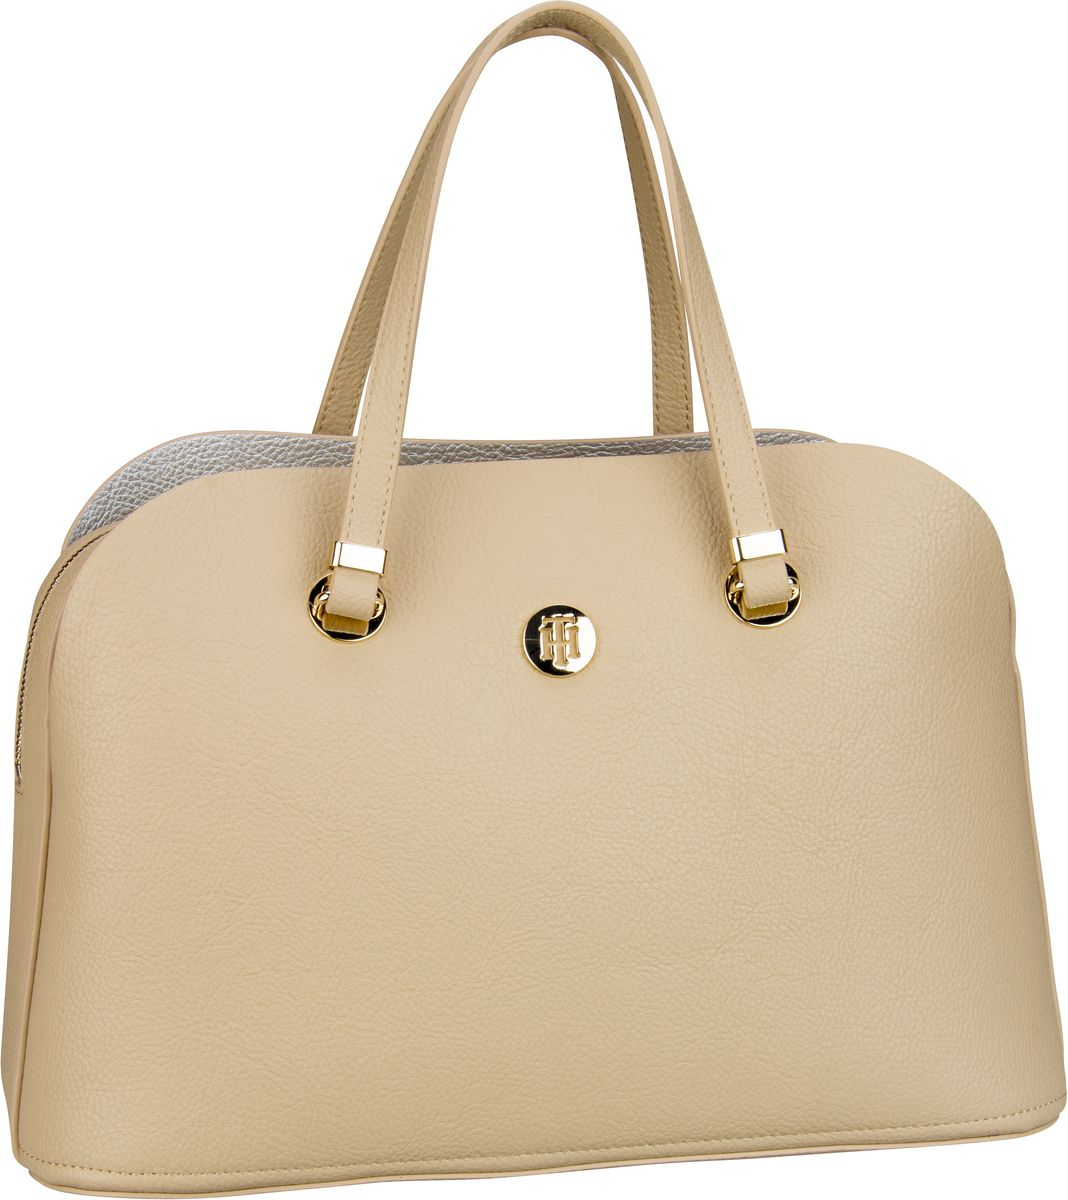 Handtasche TH Core Satchel 6444 Warm Sand/Silver Metallic (innen: Silber)